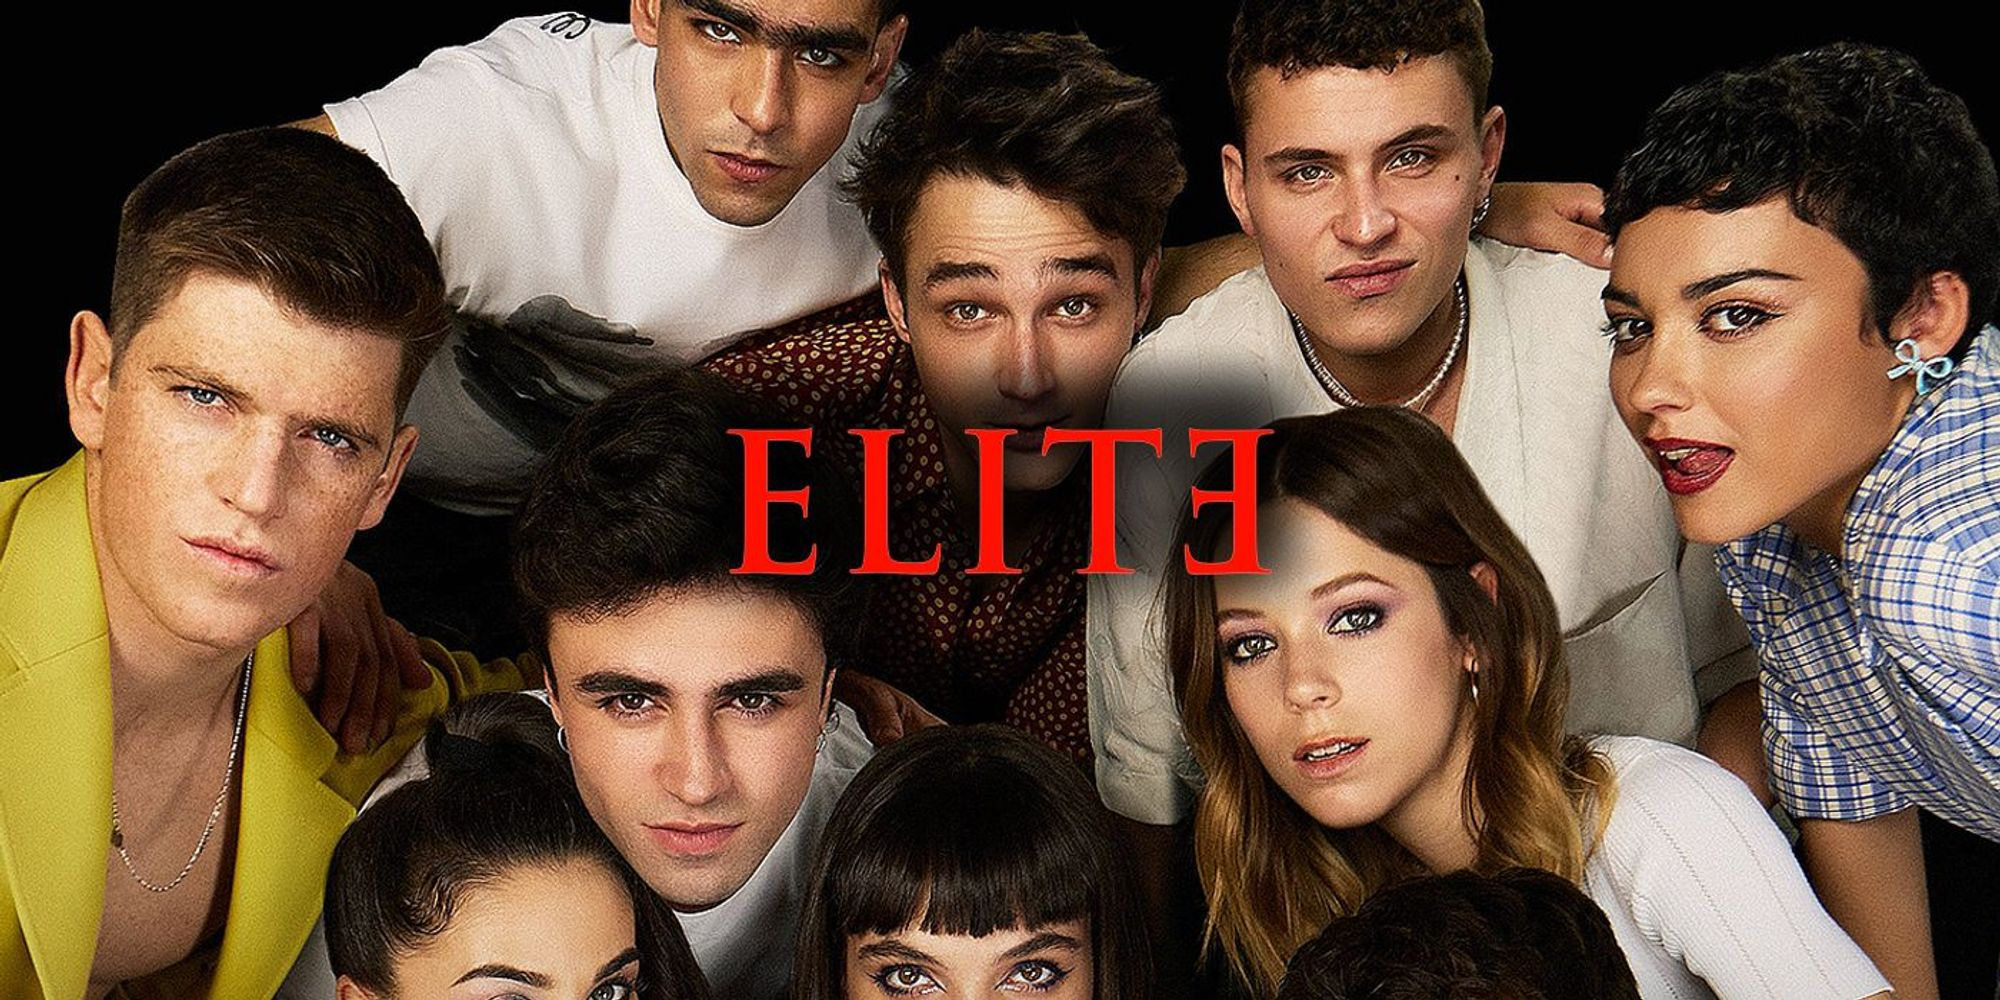 How to Watch Elite Season 4 Episode 1 on Netflix - Best VPNs To Use